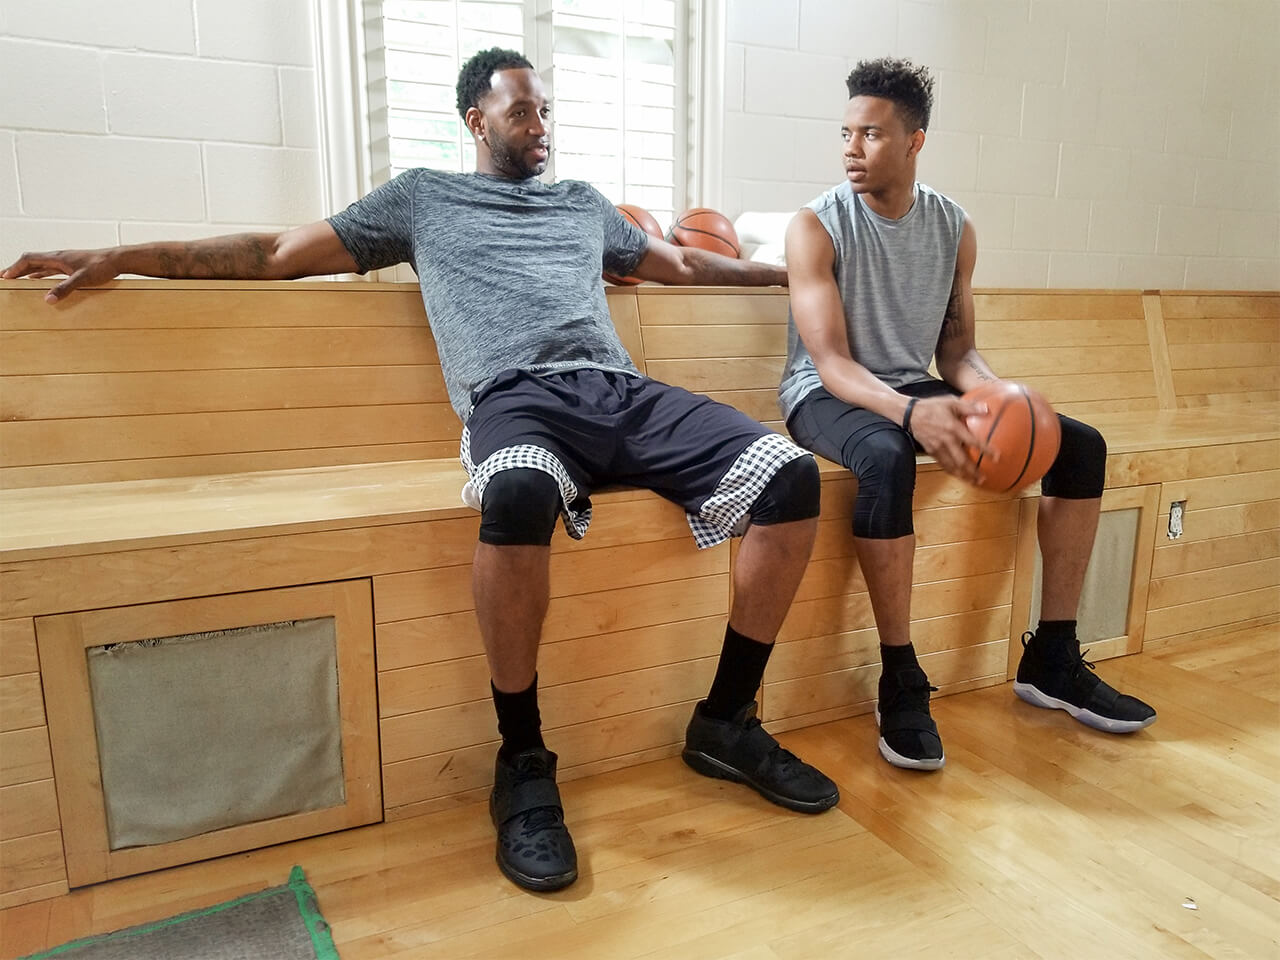 Houston, TX: Tracy McGrady with draft prospect Markelle Fultz getting advice on entering the league. - Captured on a Samsung Galaxy S8